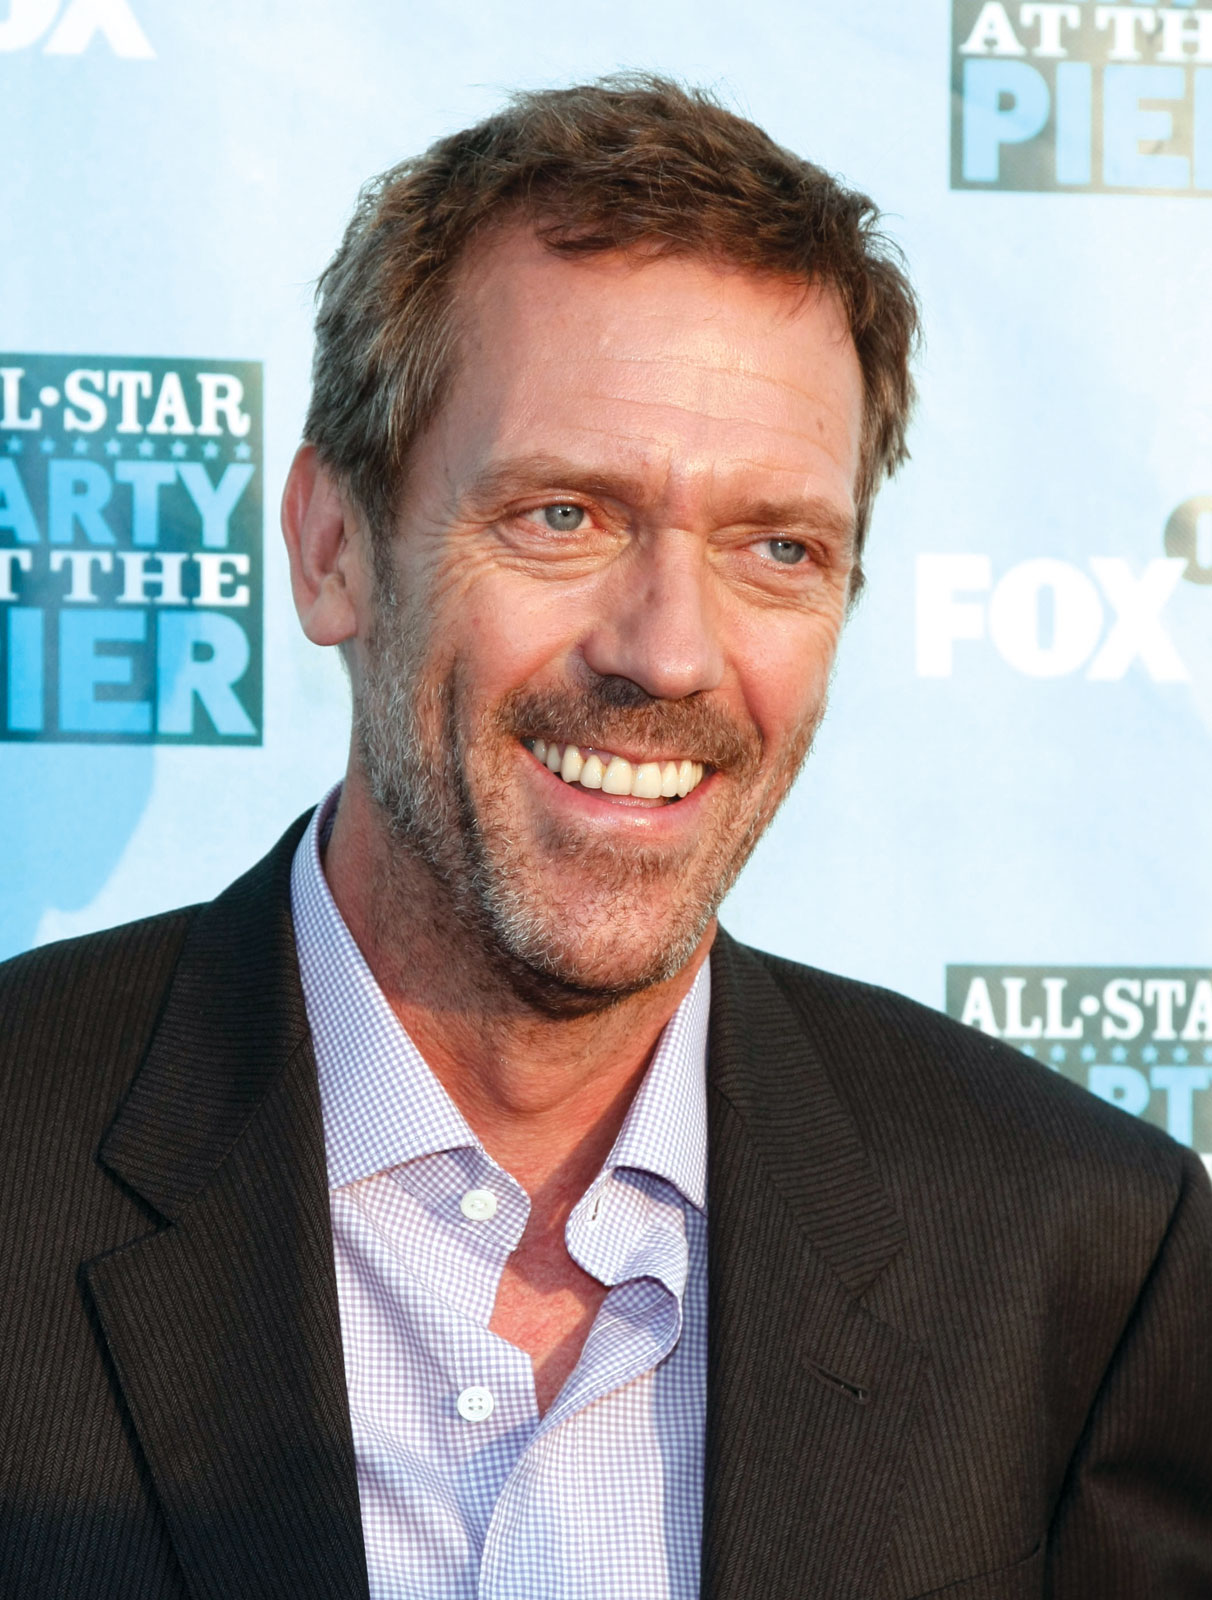 Golden Globe Award winner actor Hugh Laurie at All Star Party at the Pier